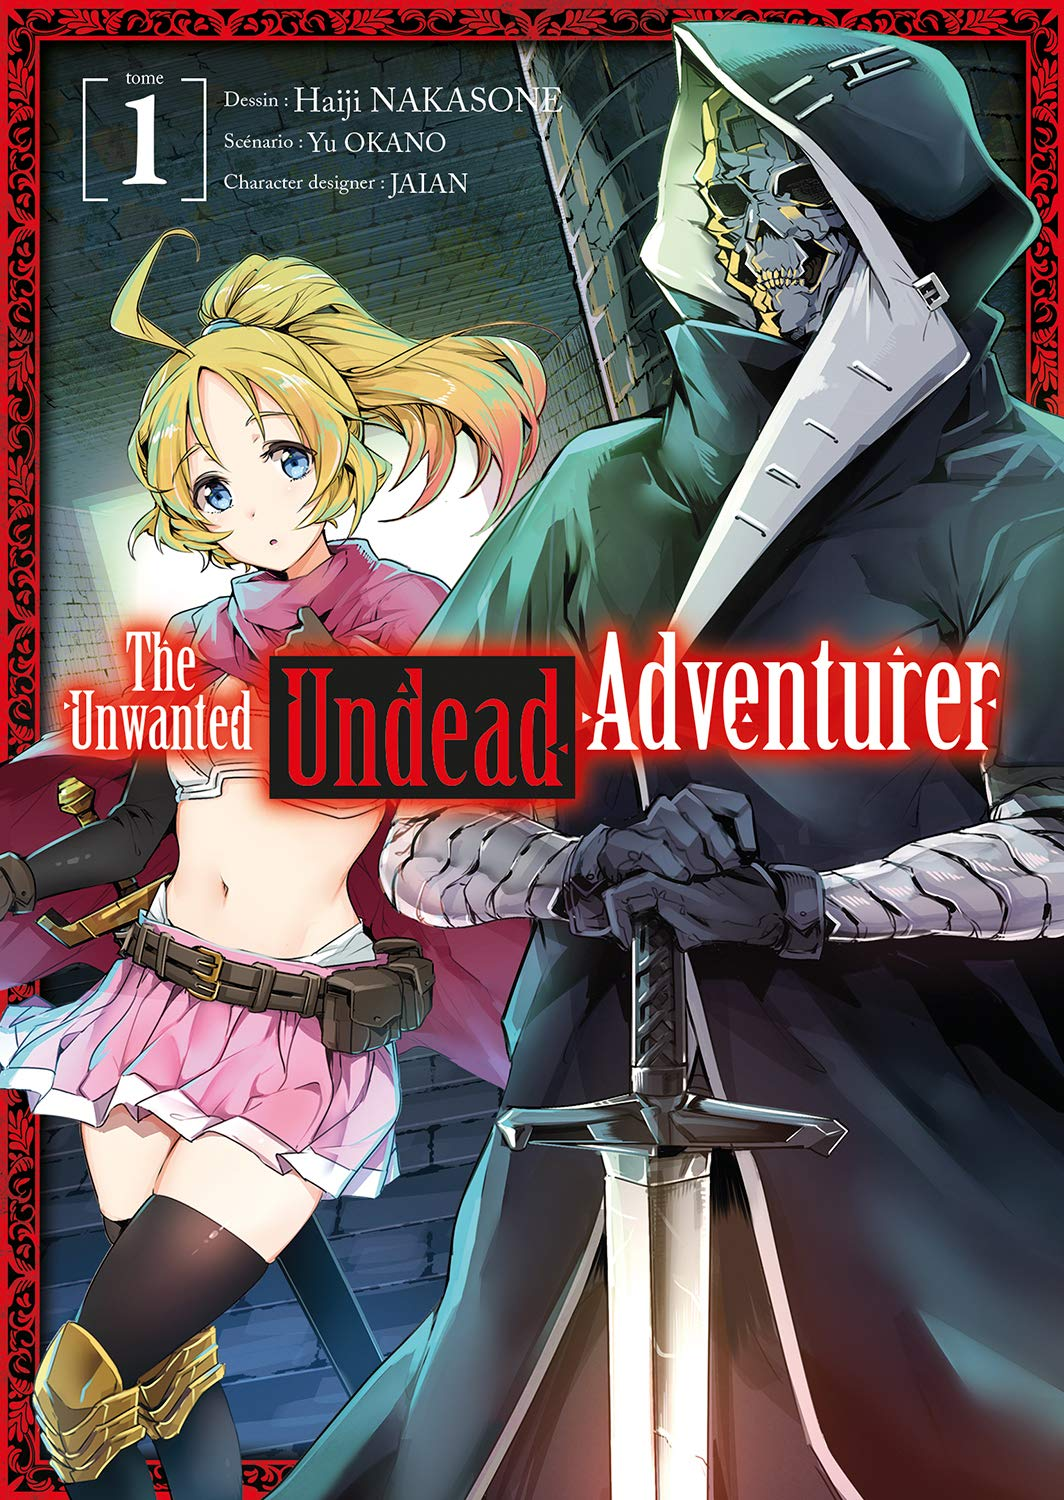 The Unwanted Undead Adventurer 1